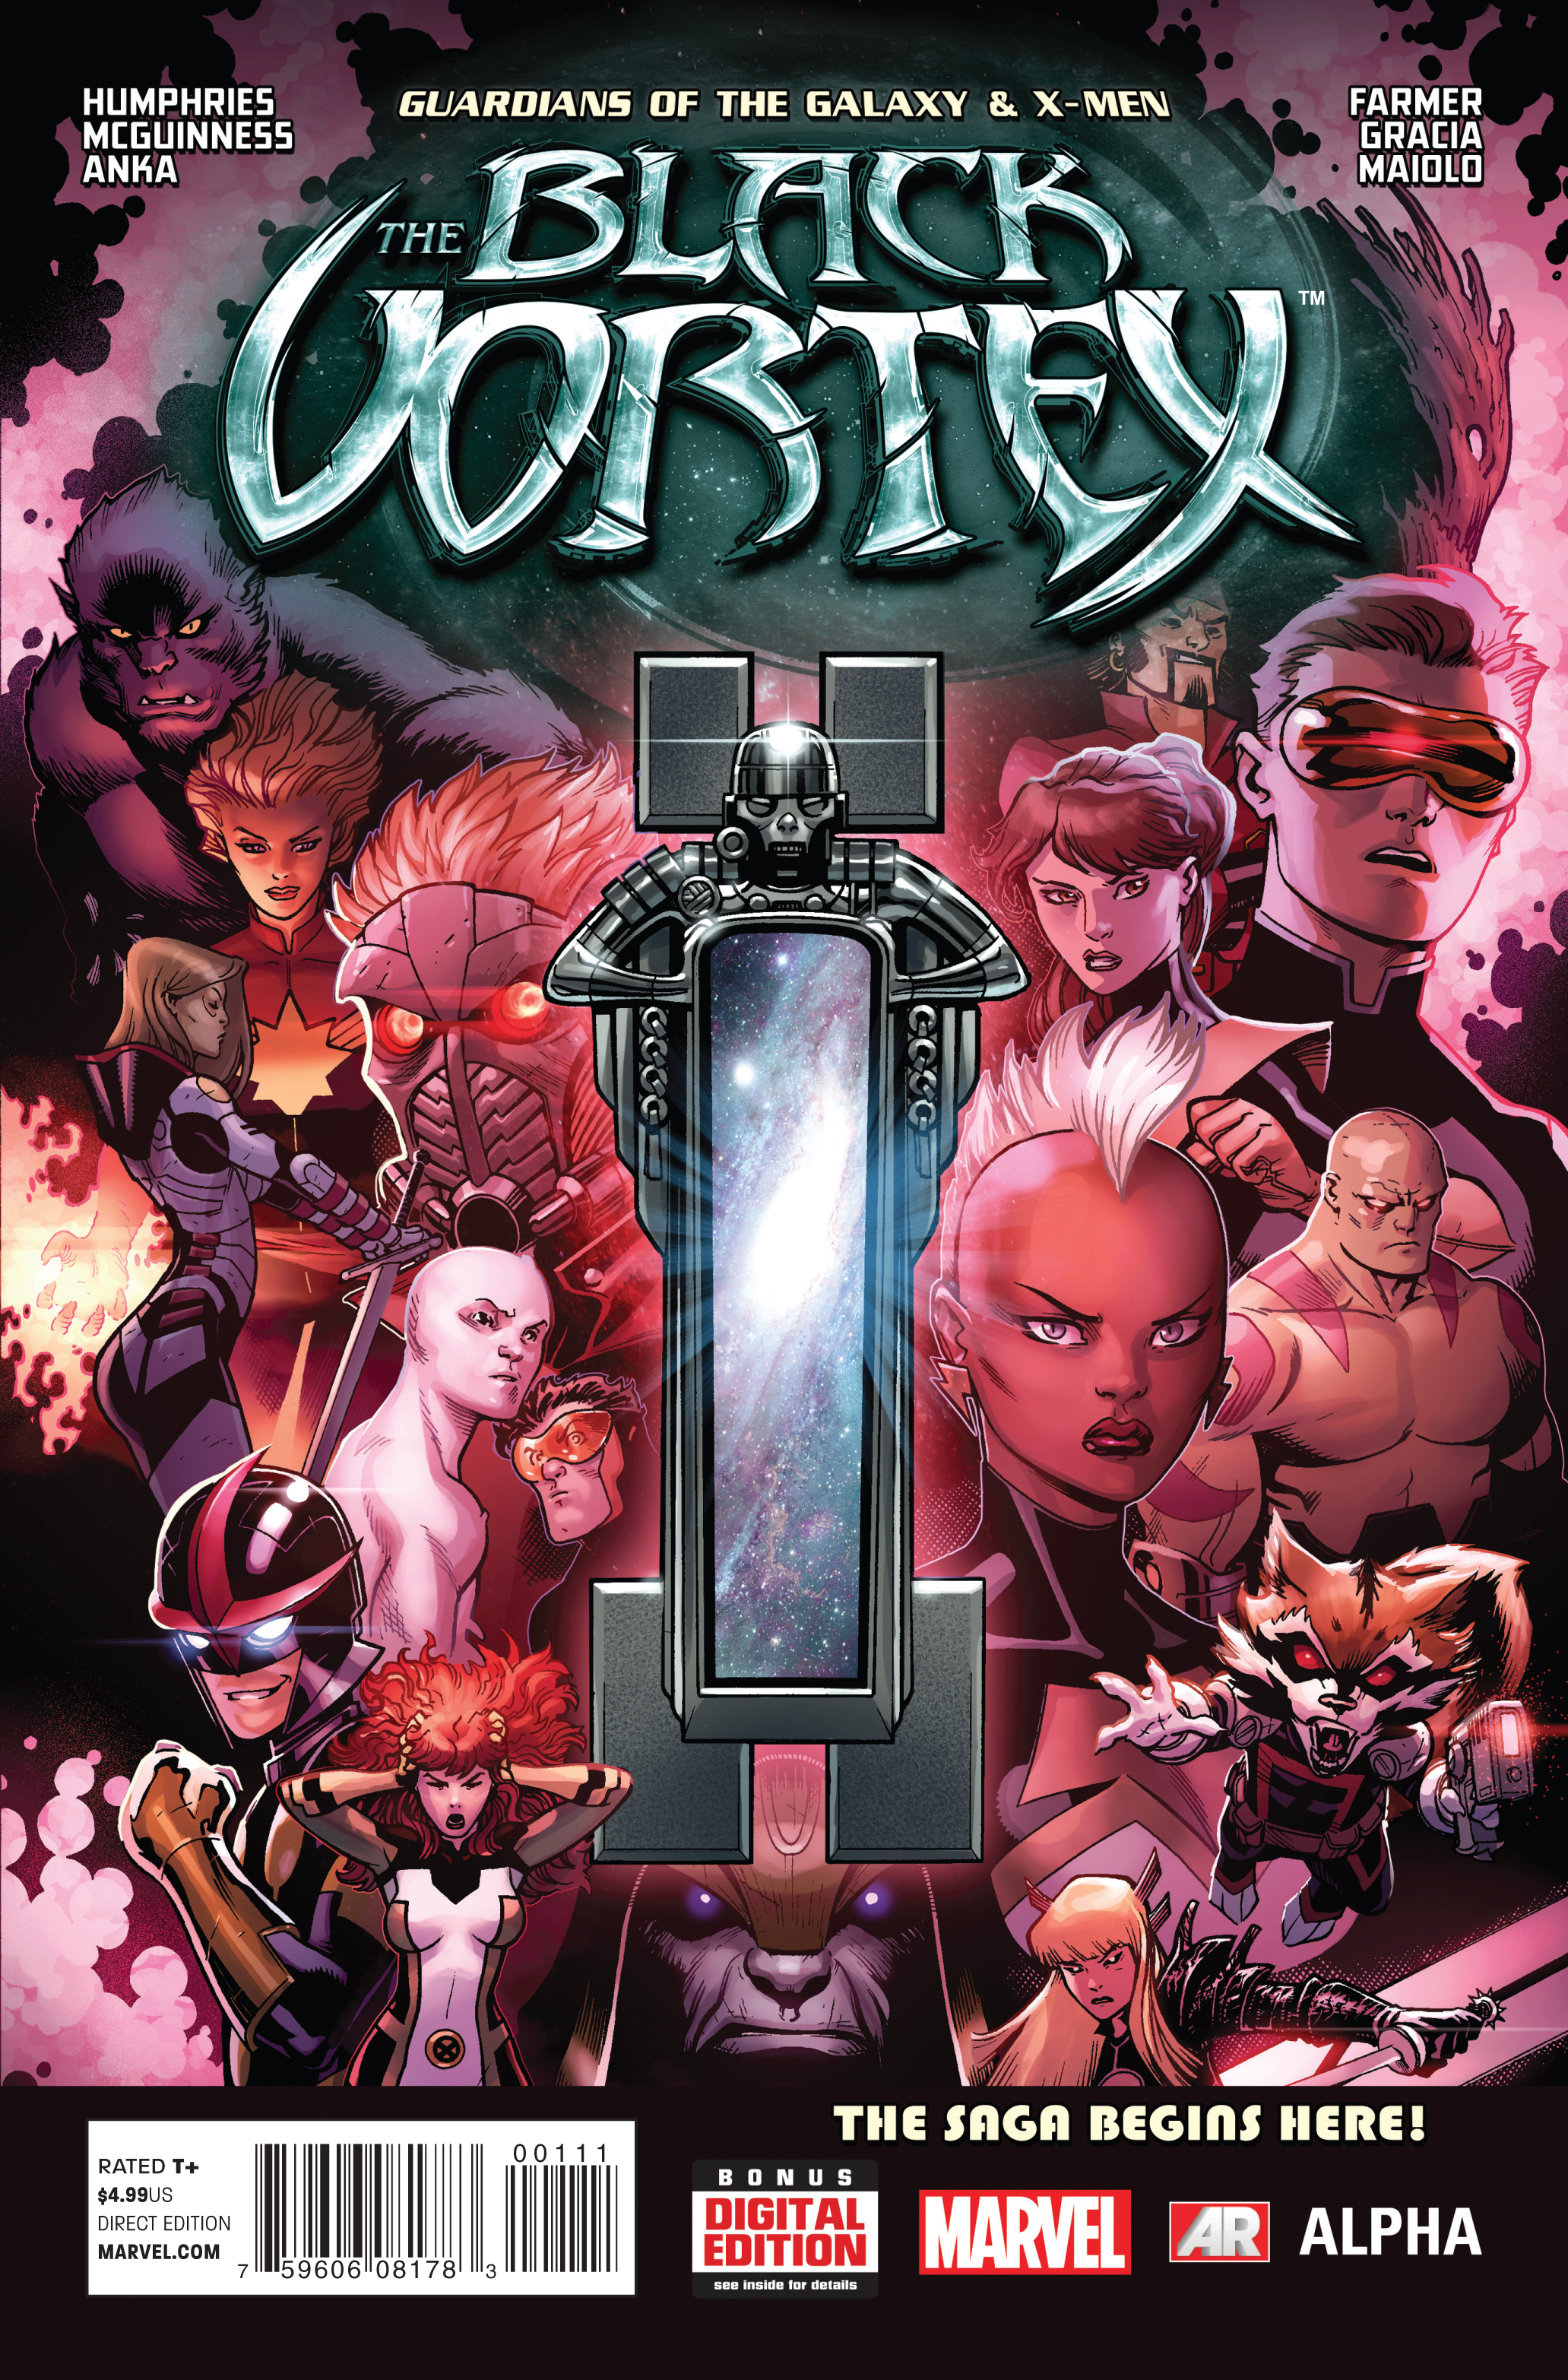 GOTG AND X-MEN BLACK VORTEX ALPHA #1 BV